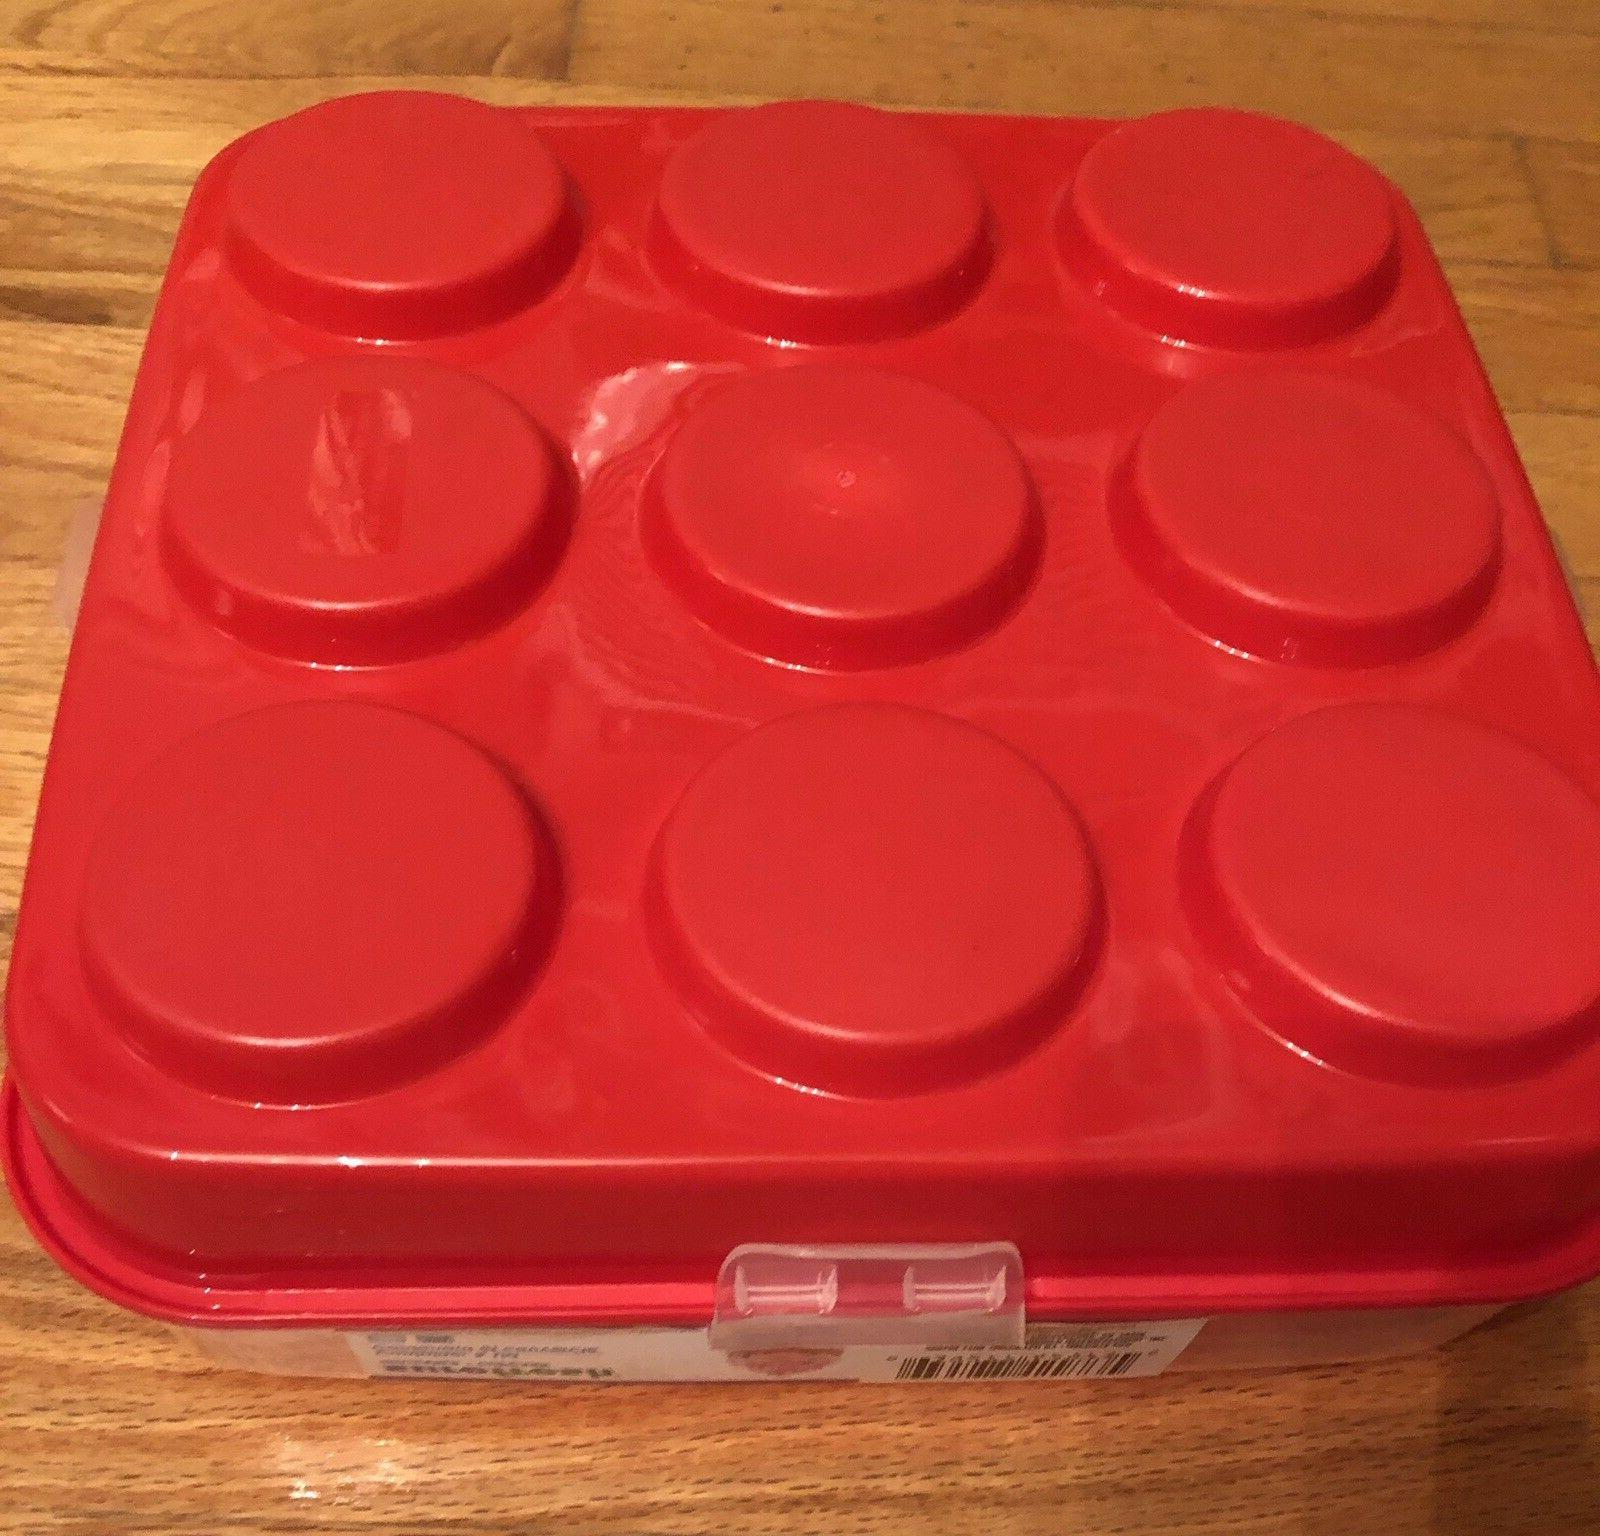 CUPCAKE PLASTIC LID WITH CUPCAKES